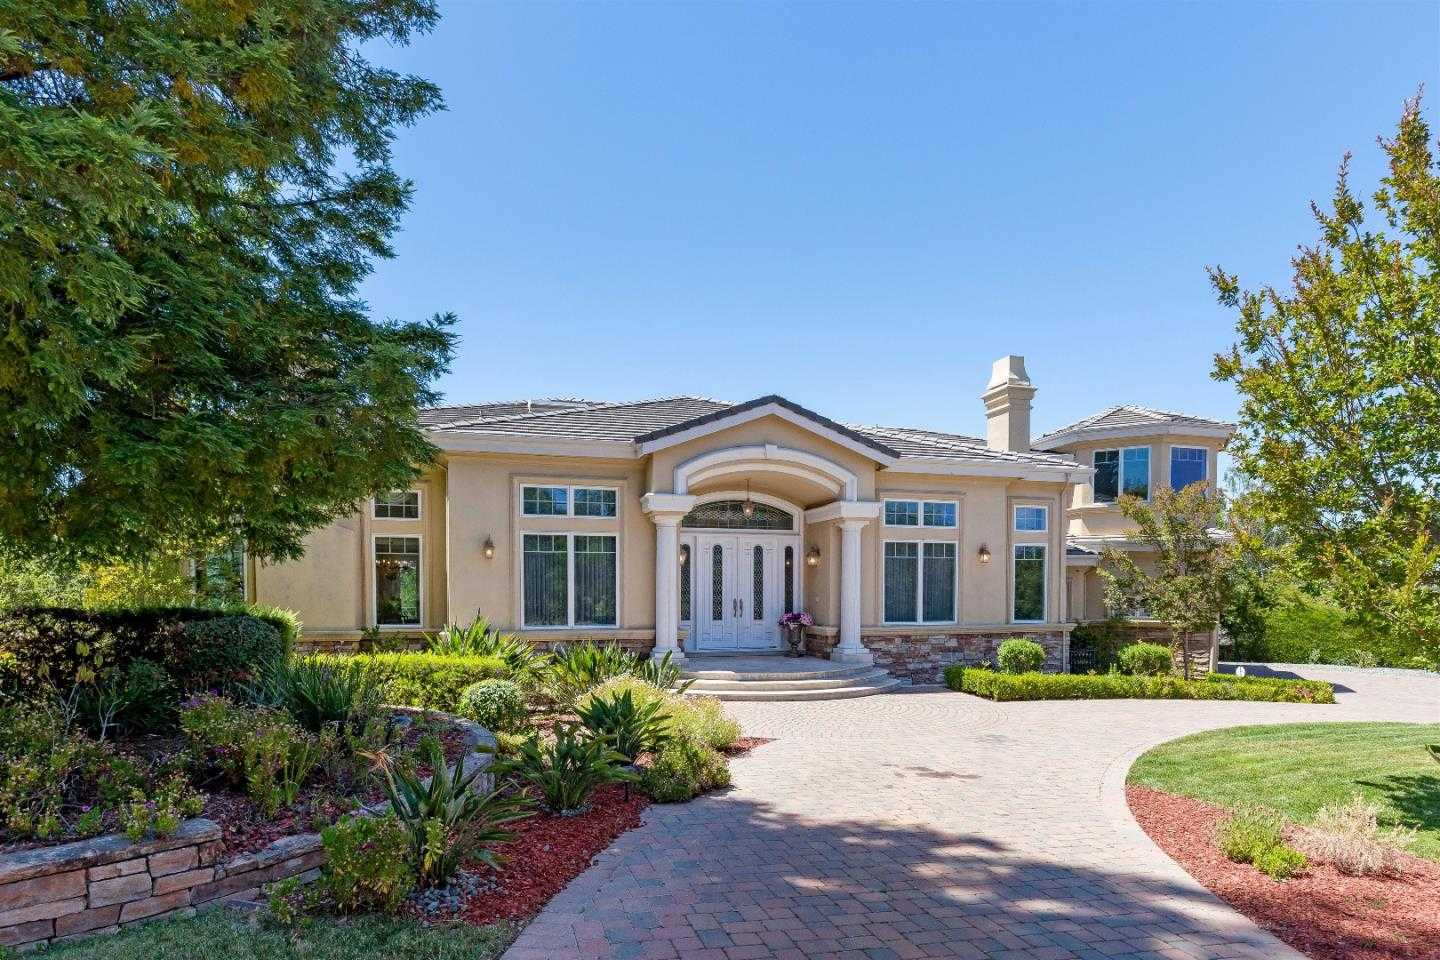 $5,899,000 - 6Br/7Ba -  for Sale in Saratoga